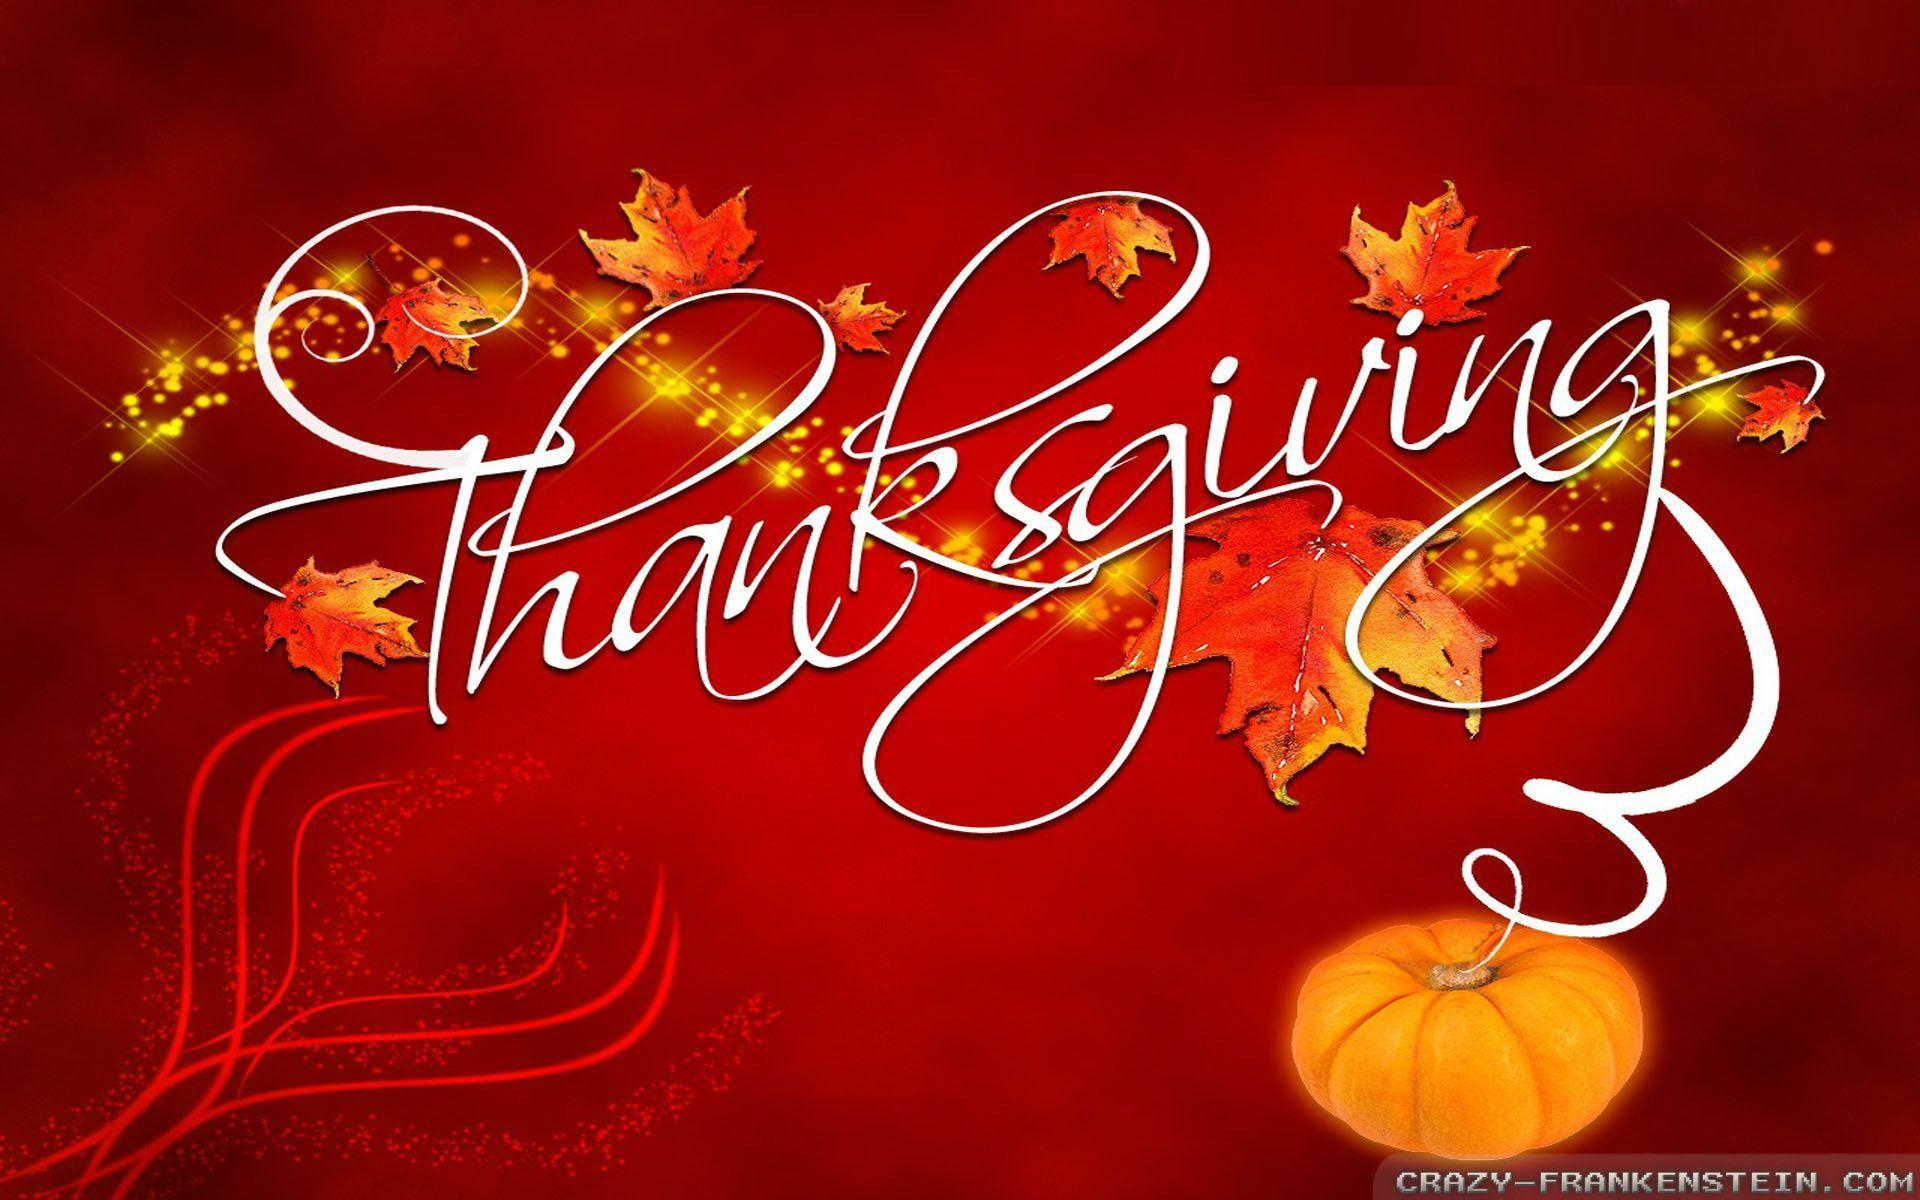 Thanksgiving free wallpapers wallpaper cave - Thanksgiving screen backgrounds ...